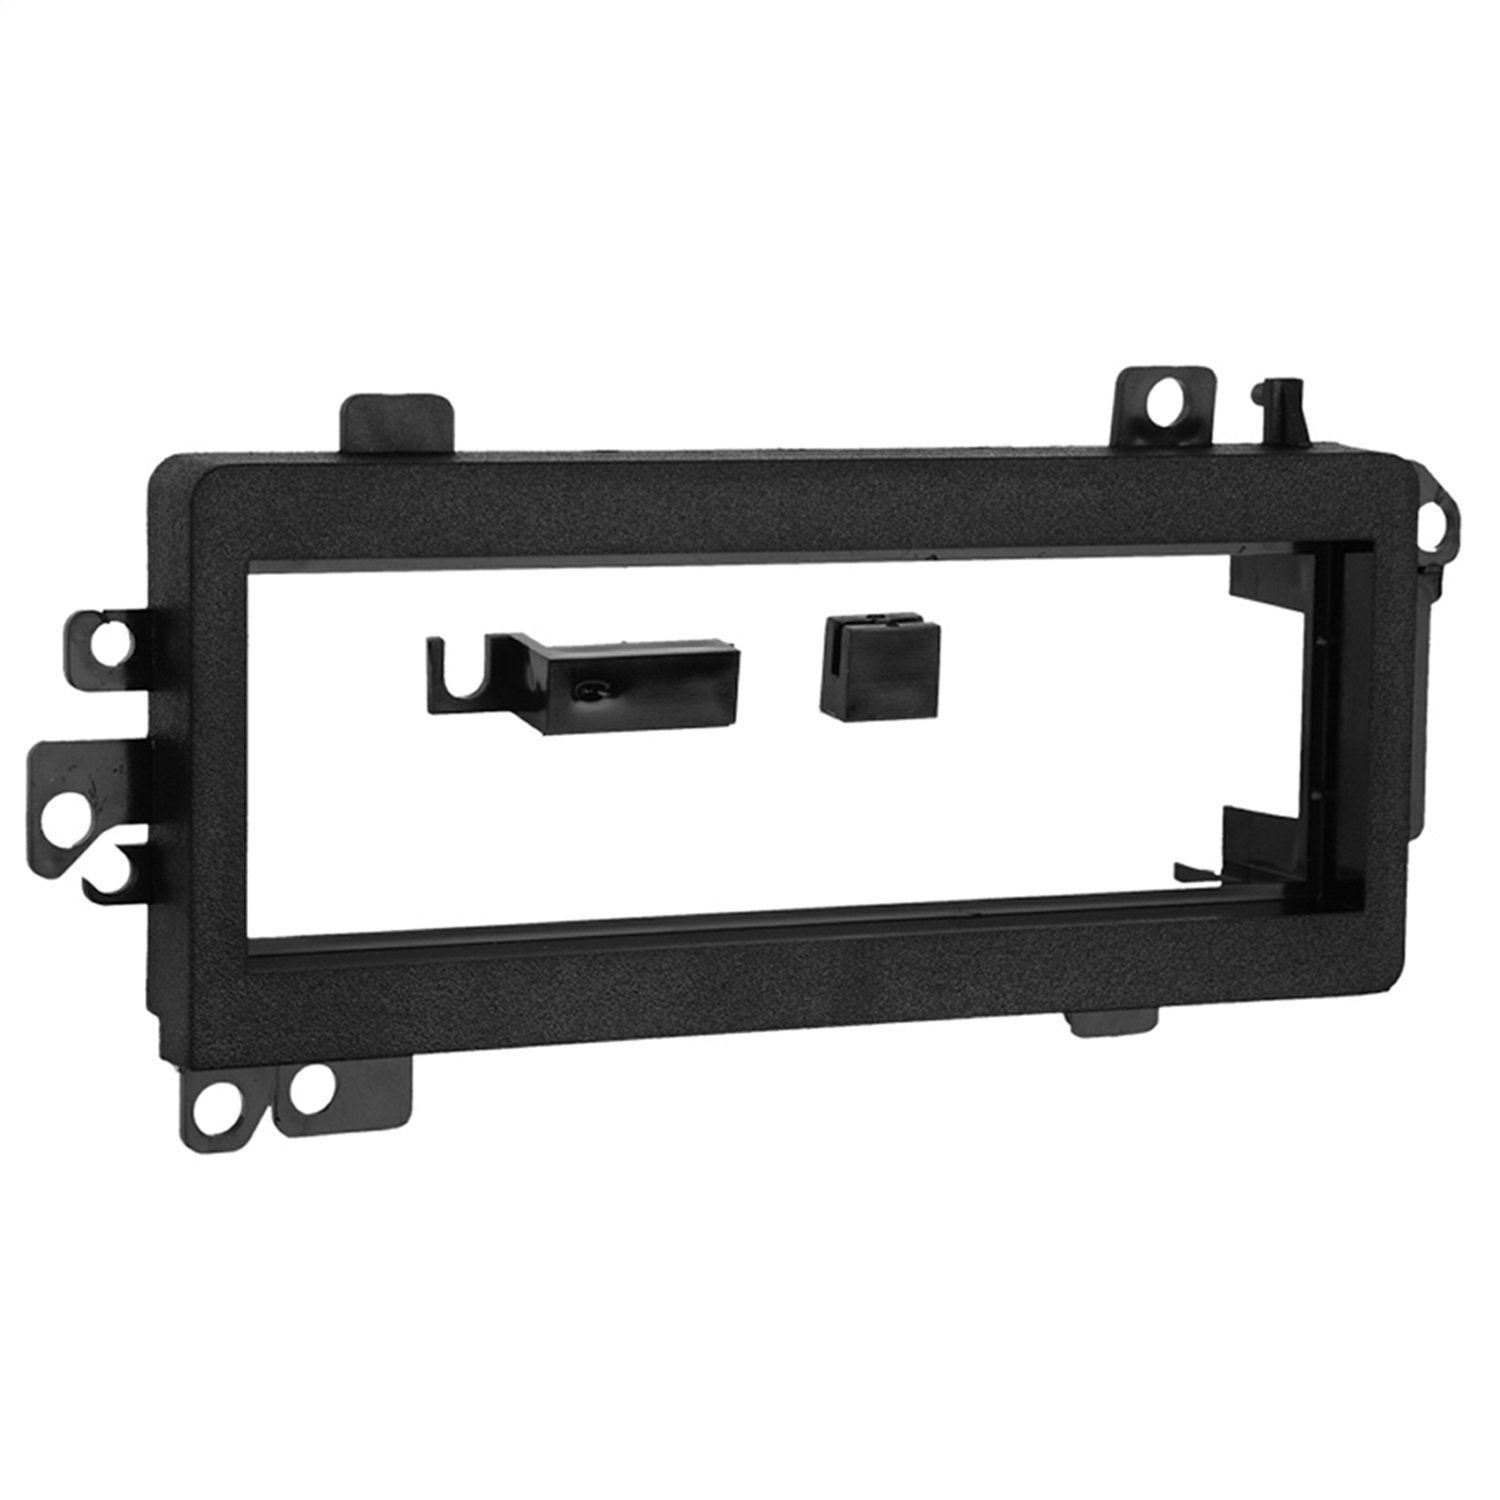 Jeep Wrangler Stereo Dash Kit Double Din Radio Metra 99 6700 For Ford Chry 74 03